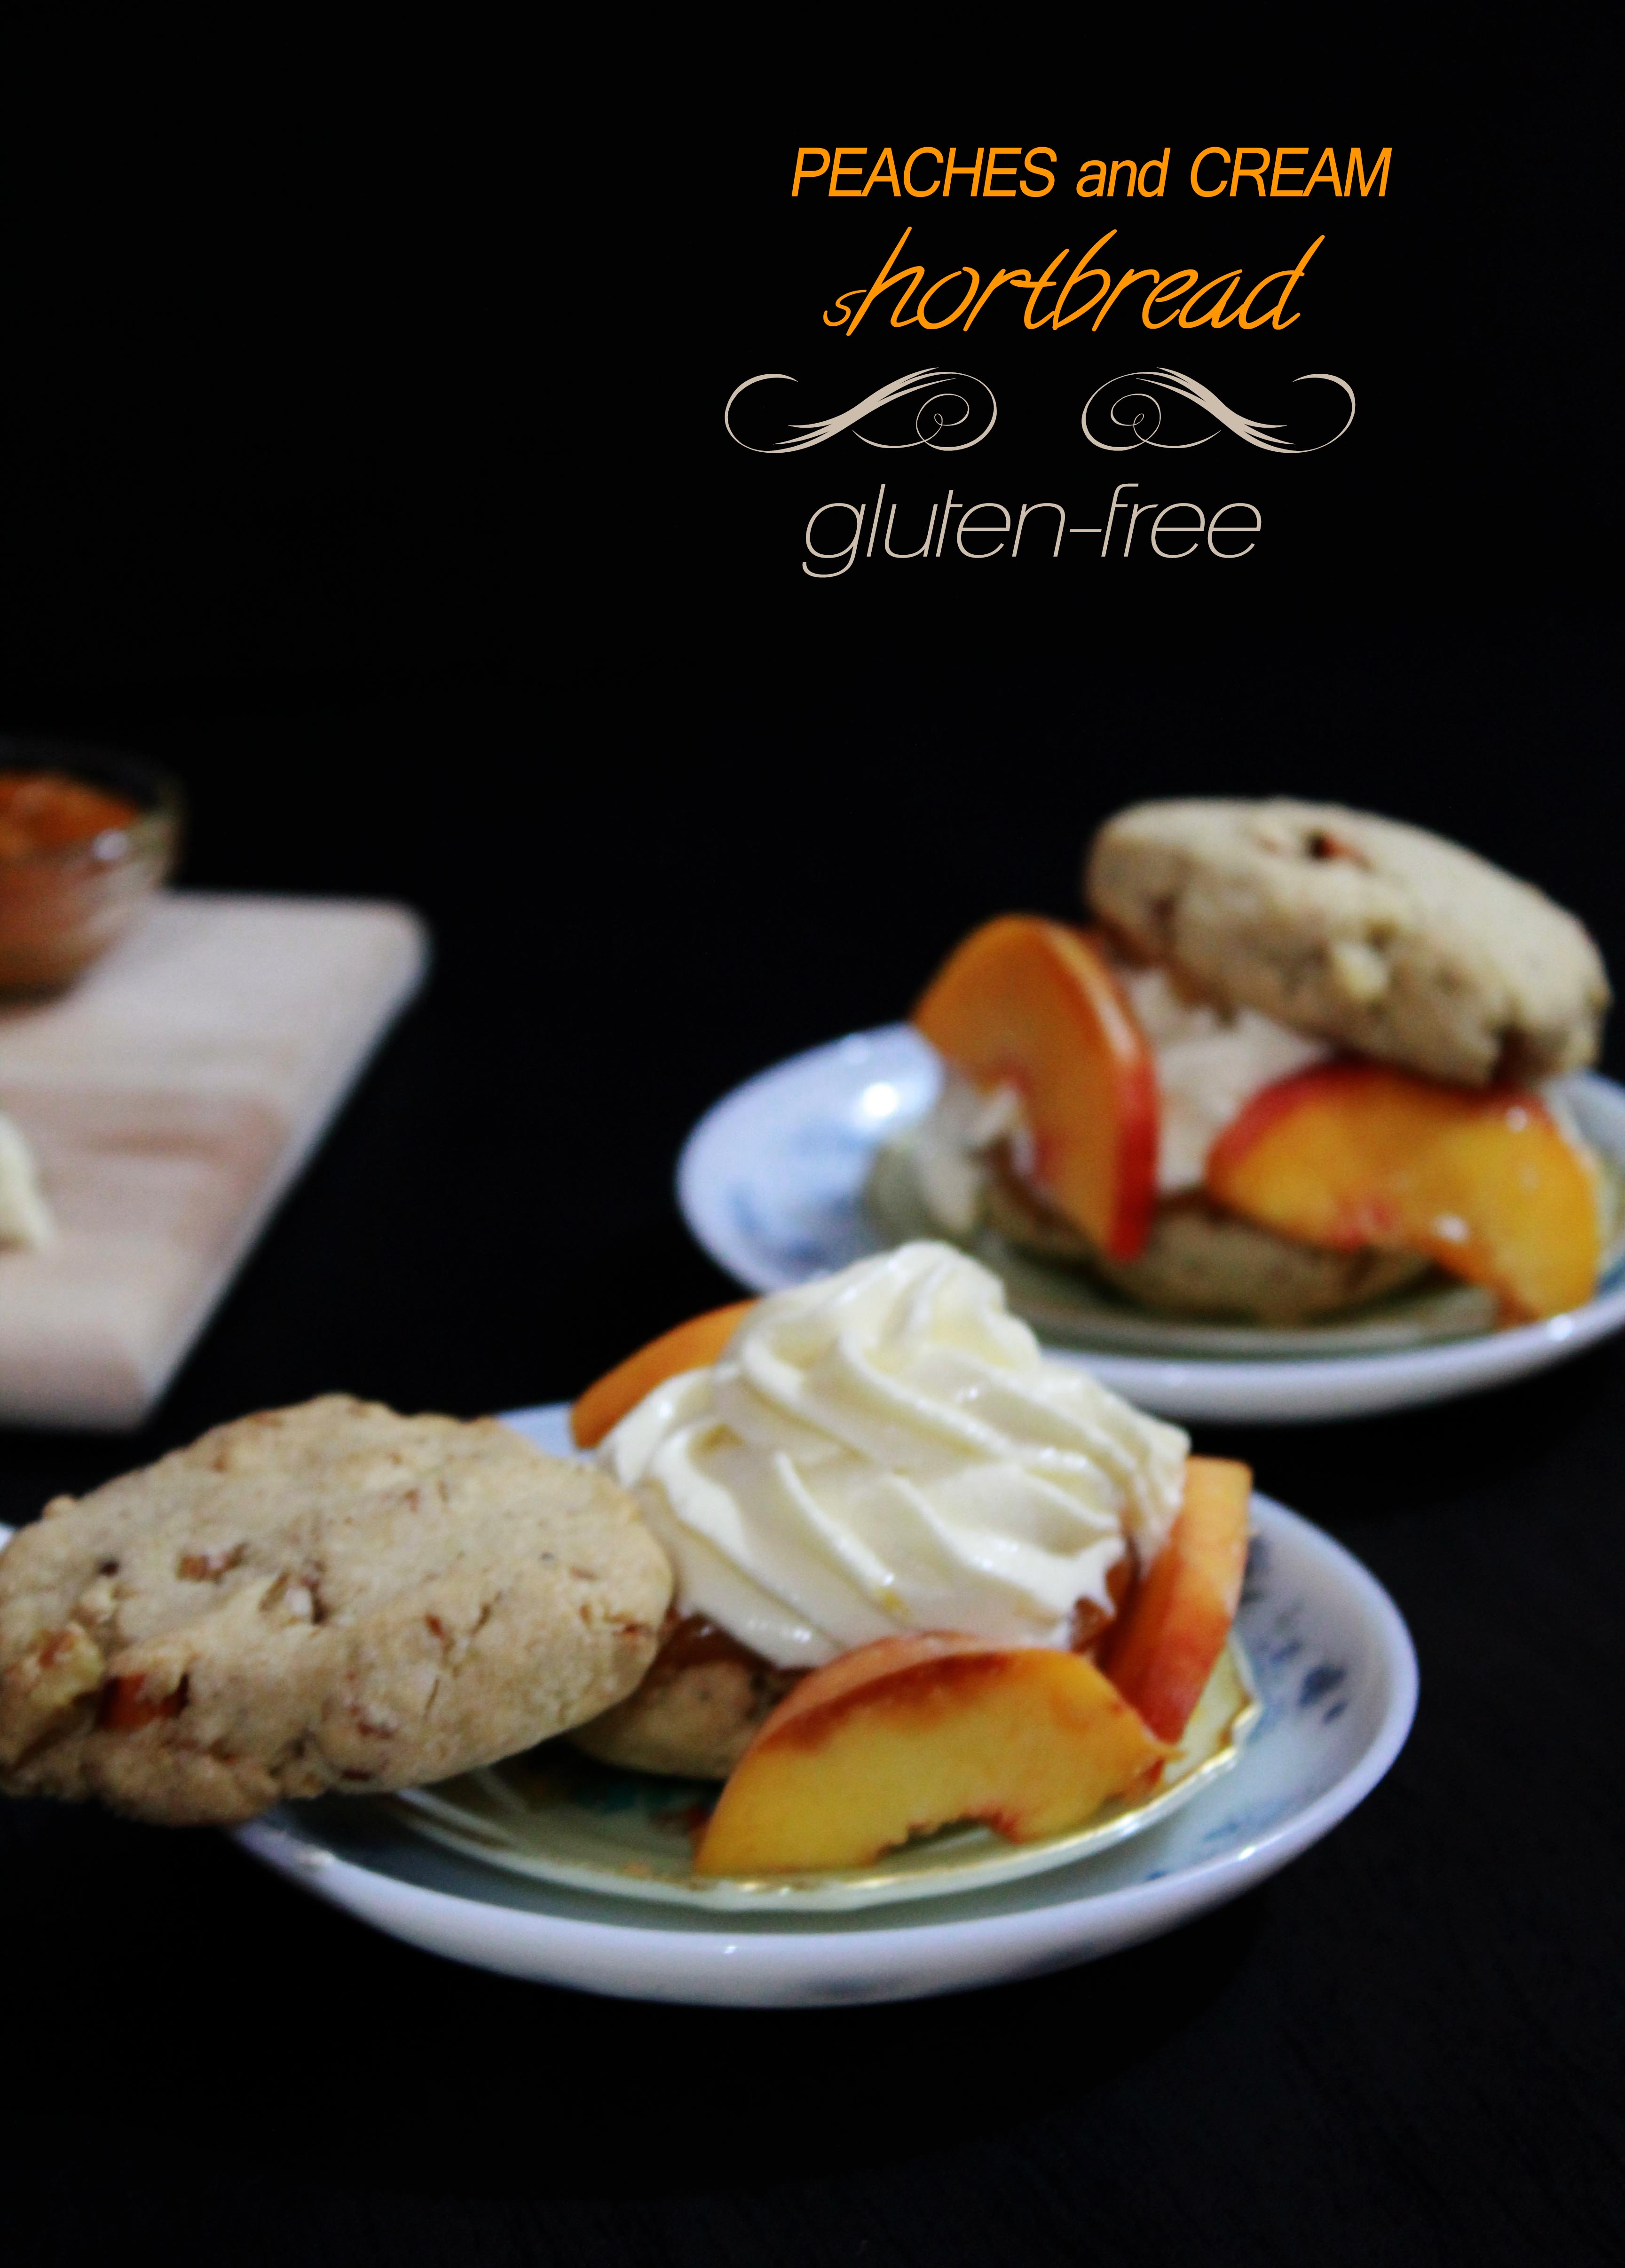 Peaches and Cream Shortbread Gluten Free